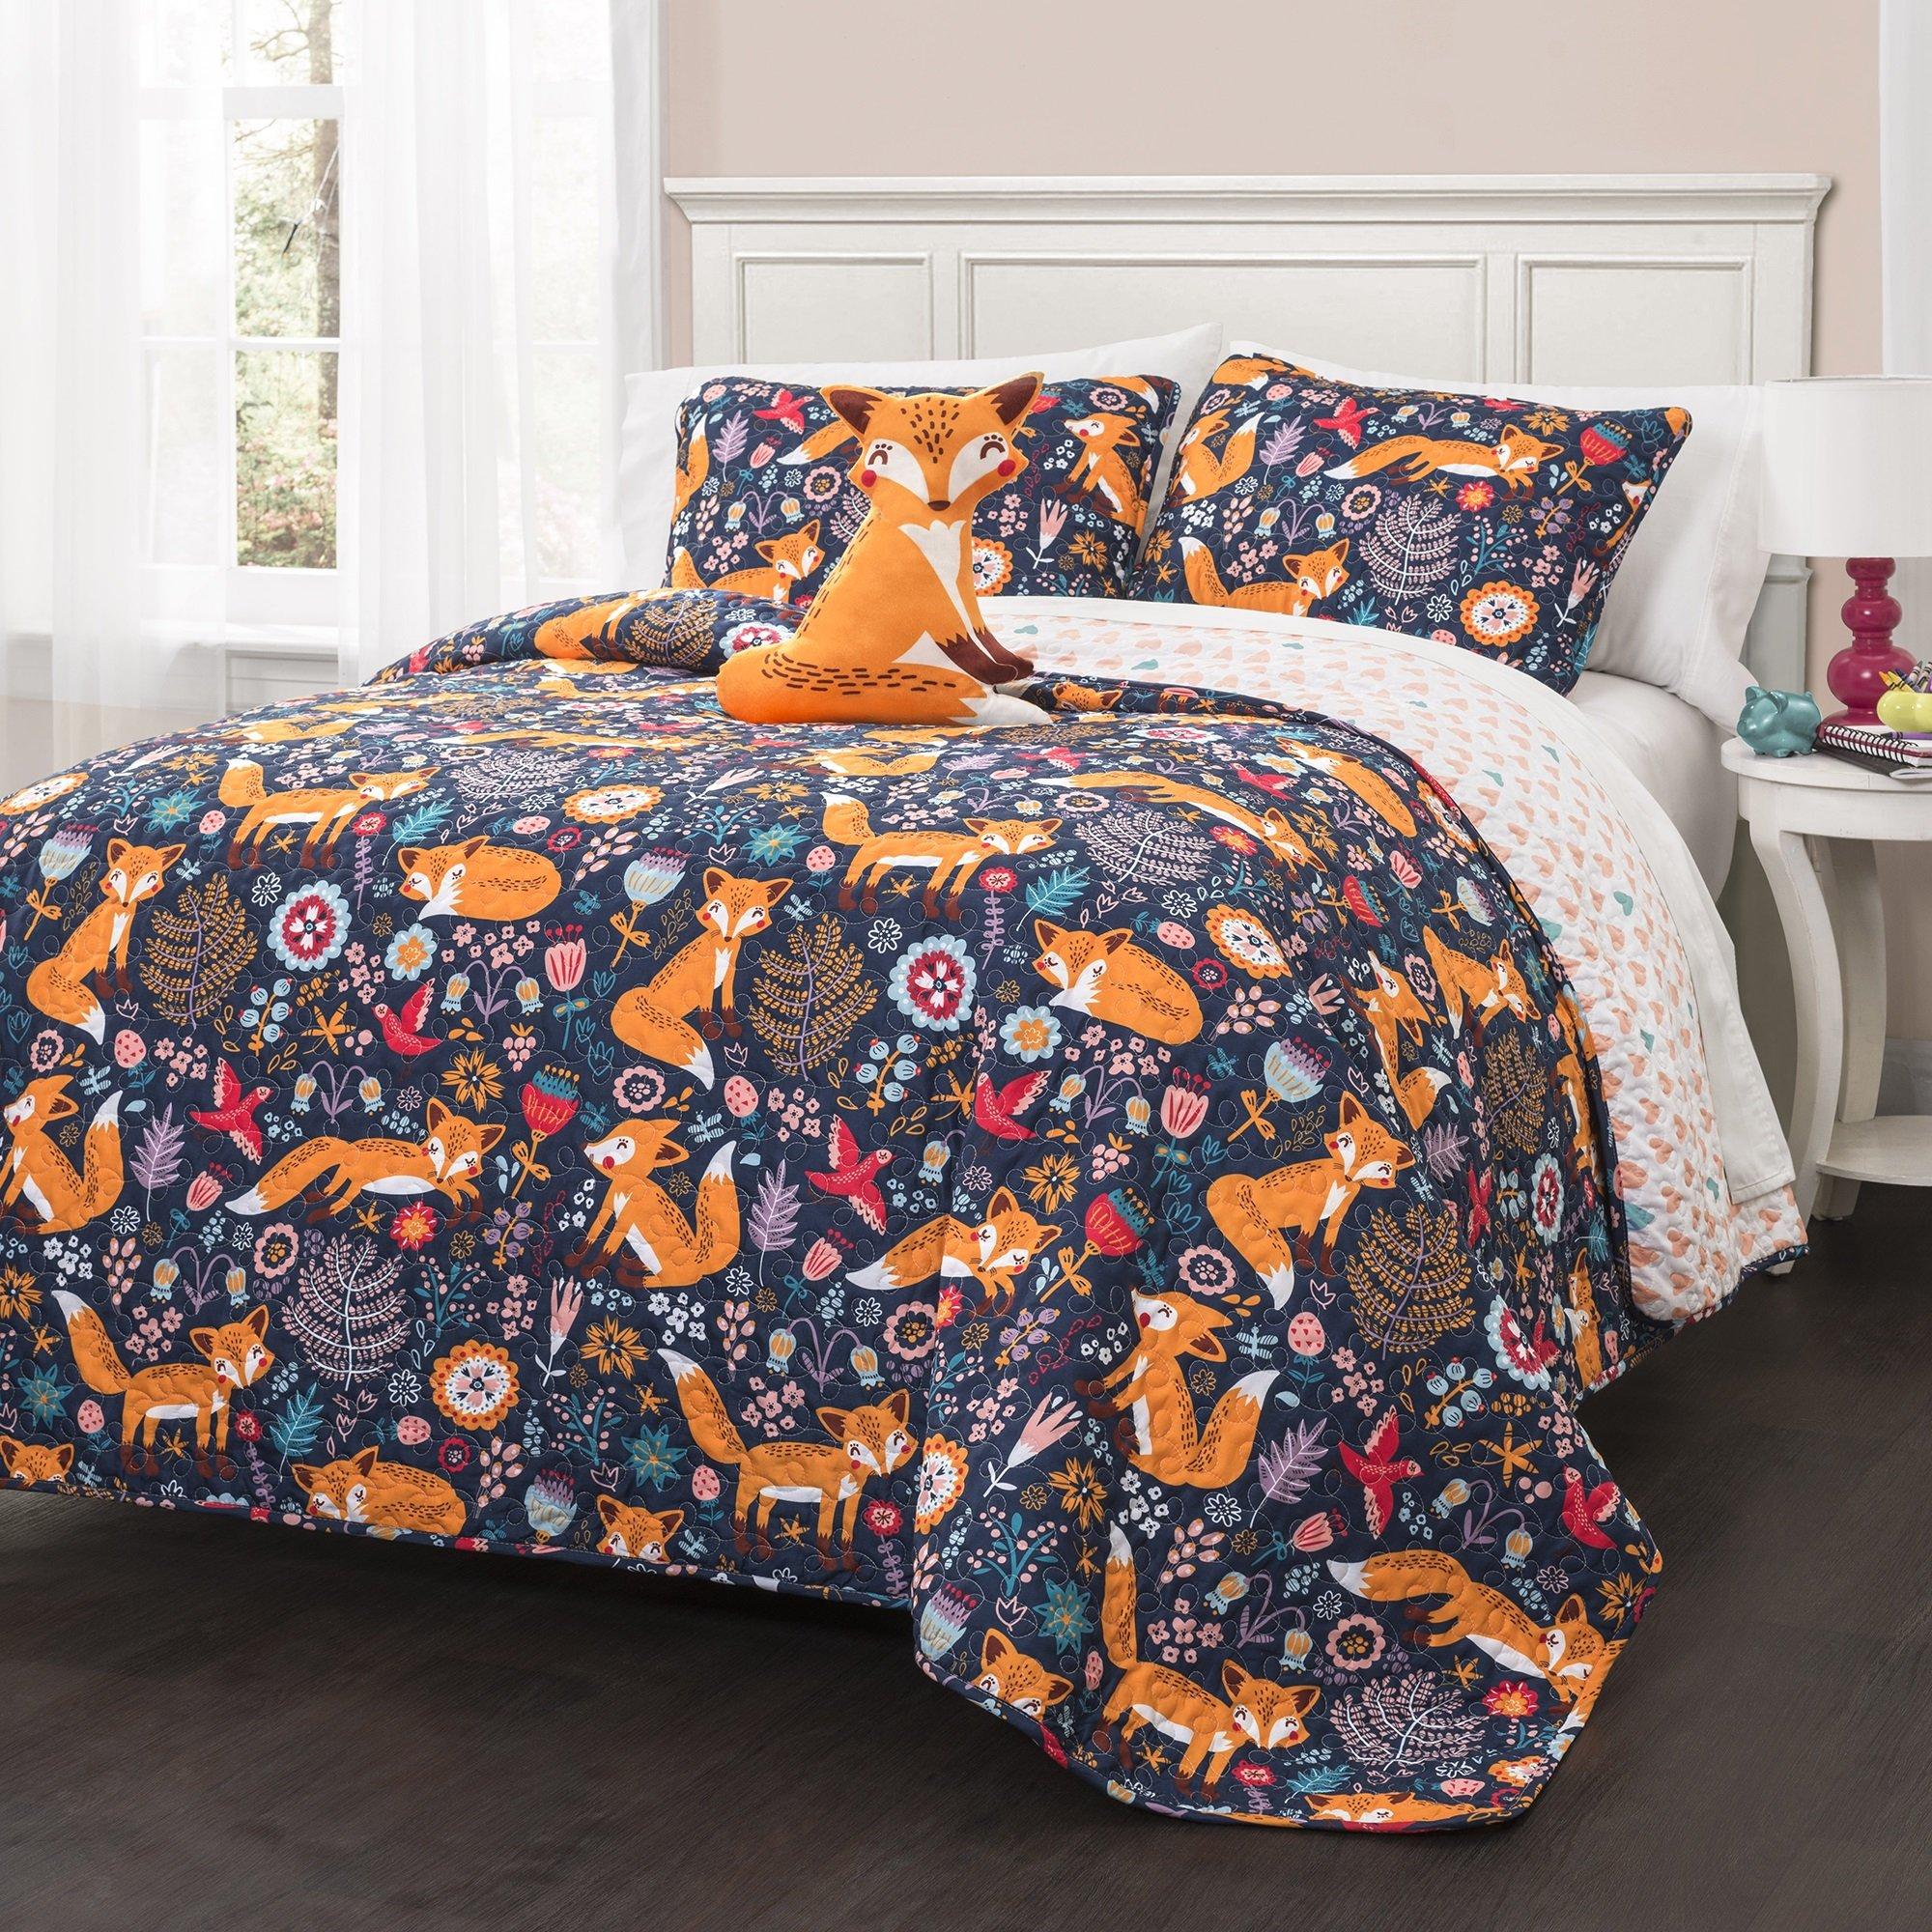 3 Piece Playful Pixie Fox Patterned Reversible Quilt Set Twin Size, Featuring Bold Wild Jungle Foxes Cute Birds Forest Leafs Printed Blossoming Flowers Bedding, Artistic Animal Lover Bedroom, Navy